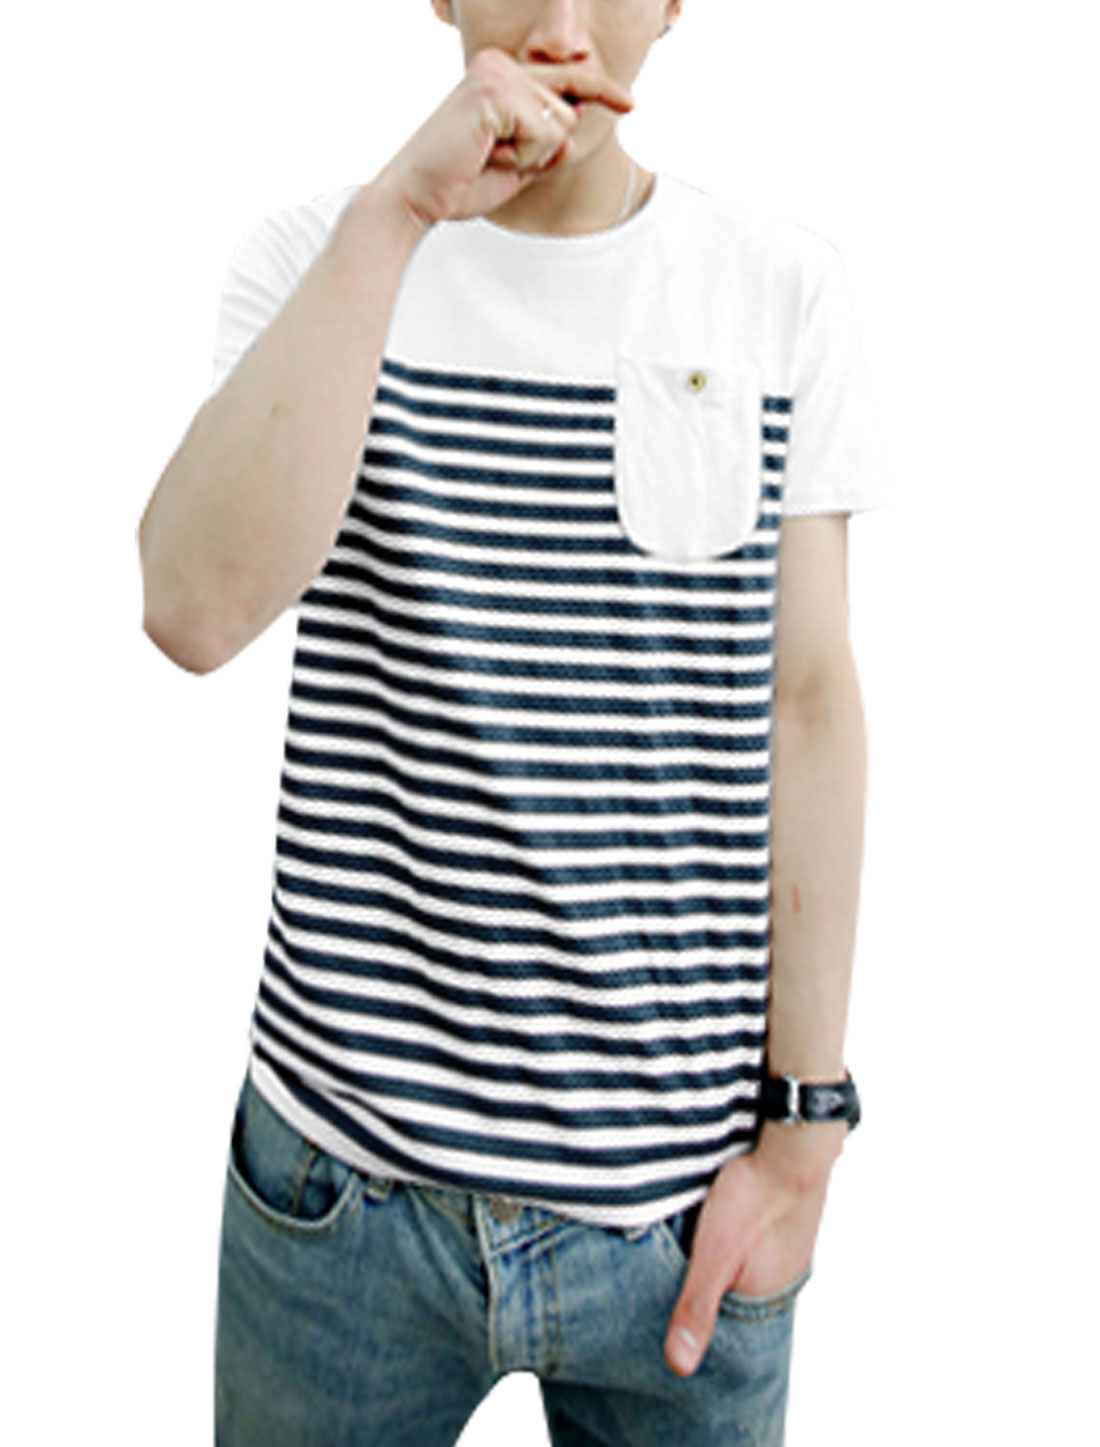 Men Stripes Print Panel Chest Pocket Tee Shirt White Navy Blue M